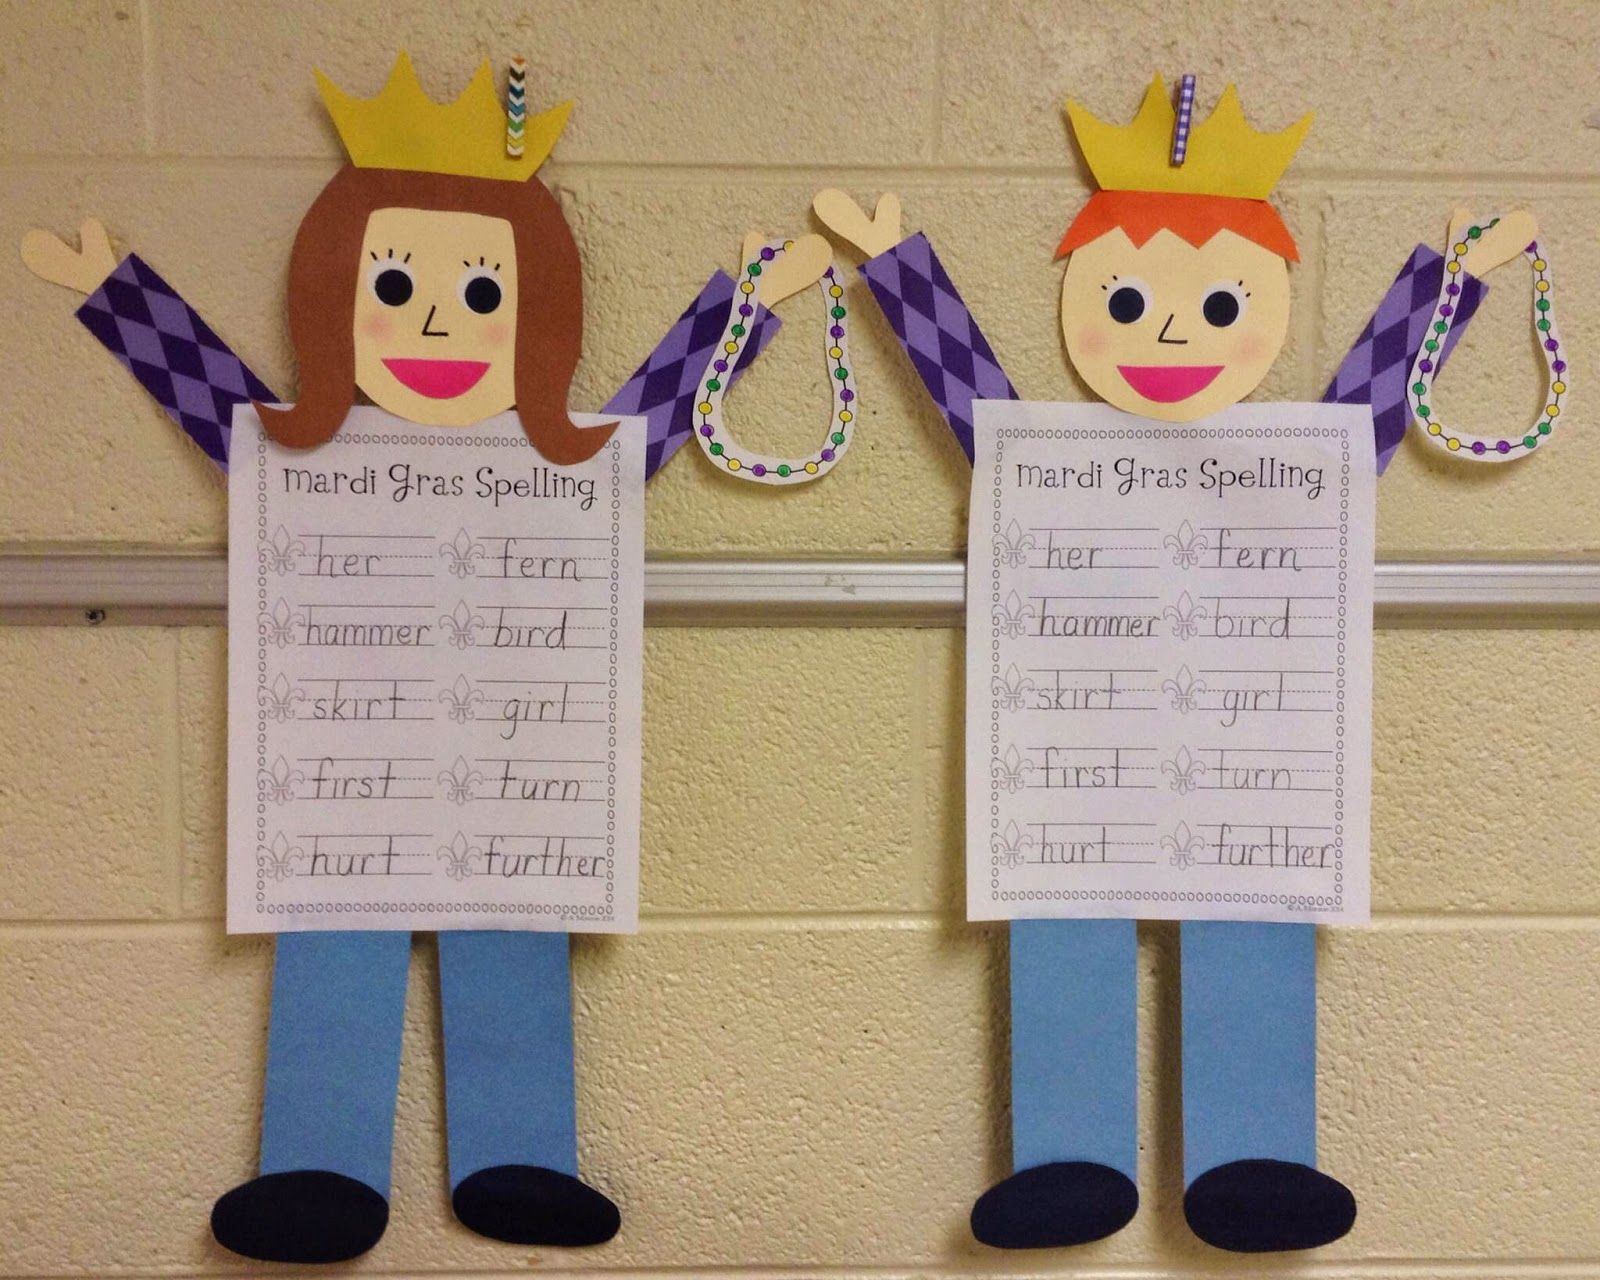 Let The Good Times Roll Mardi Gras In The Classroom